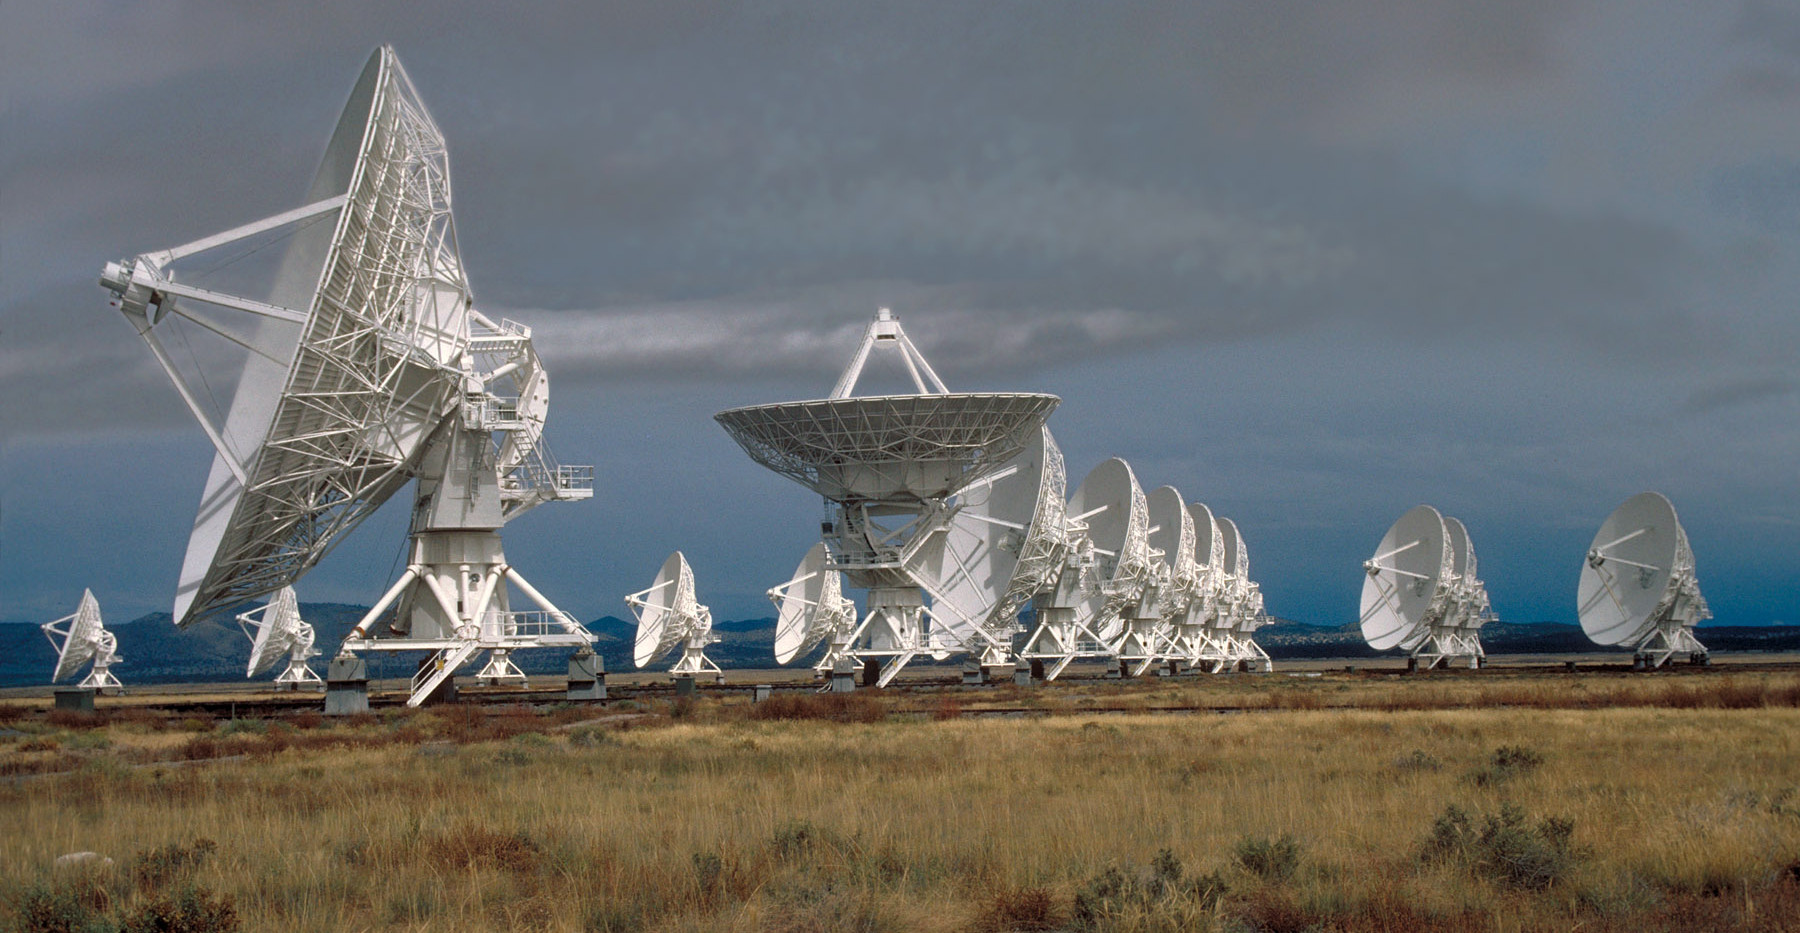 The VLA (Very Large Array) in New Mexico